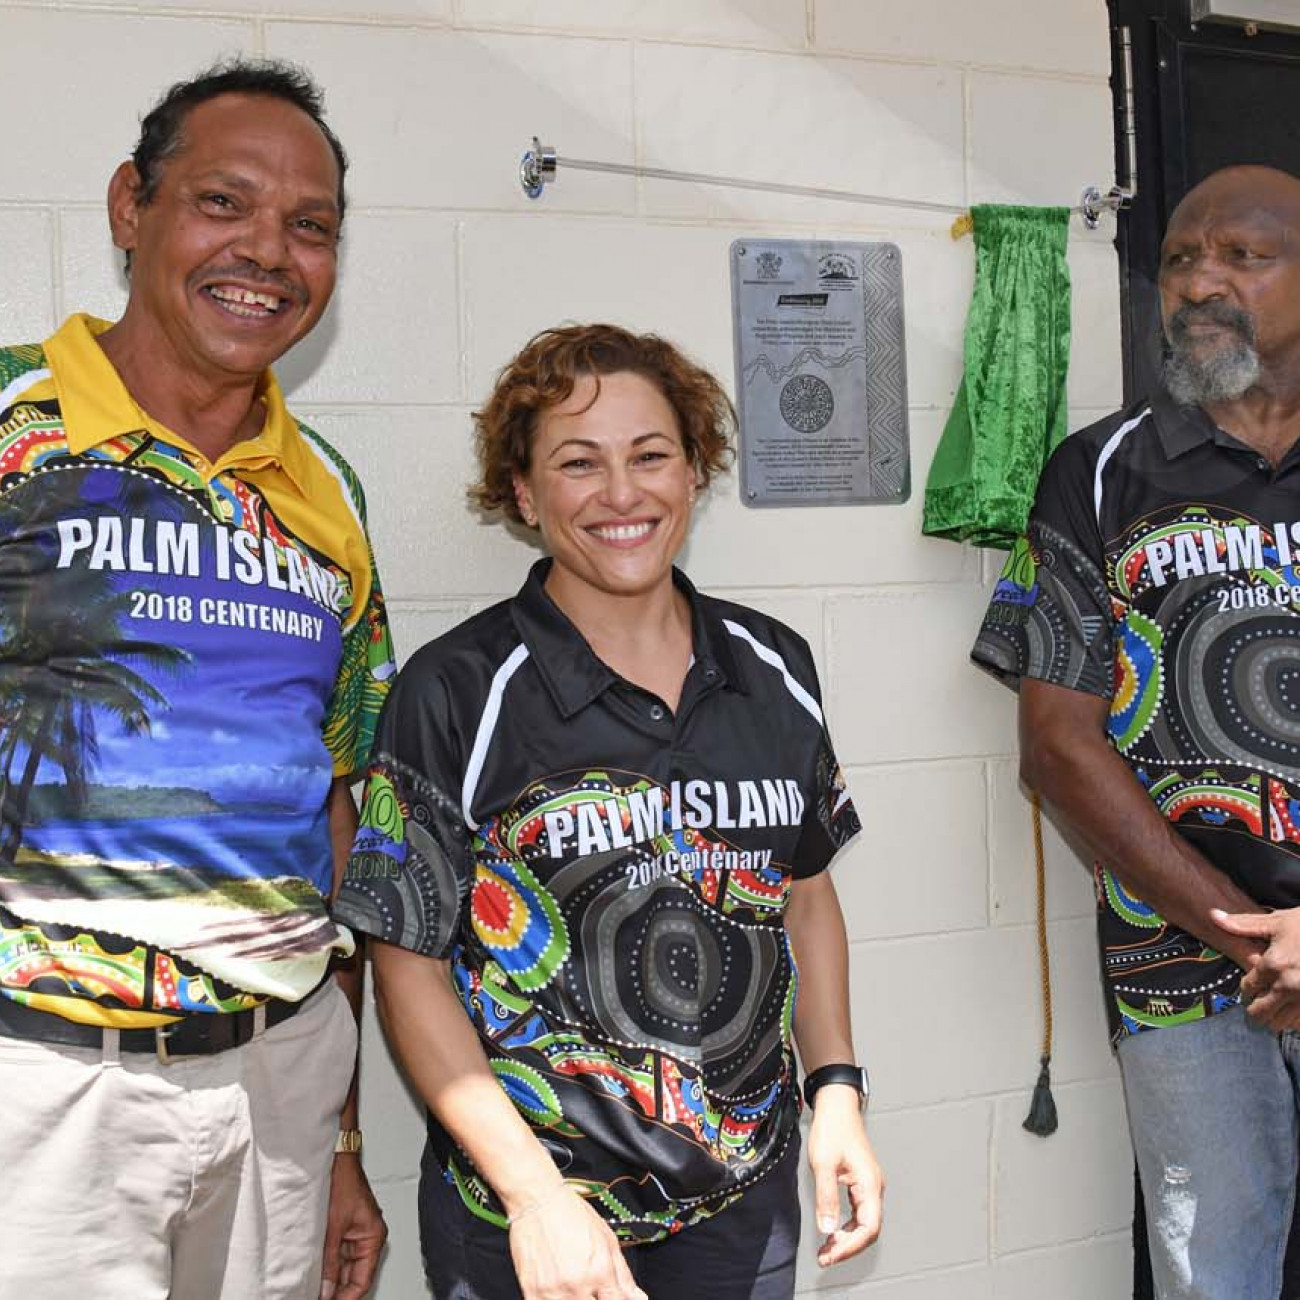 Palm Island Mayor Alf Lacey, Queensland acting Premier Jackie Trad and 1982 Commonwealth Games Gold Medalist in Boxing - Palm Islander Douglas Sam Jnr